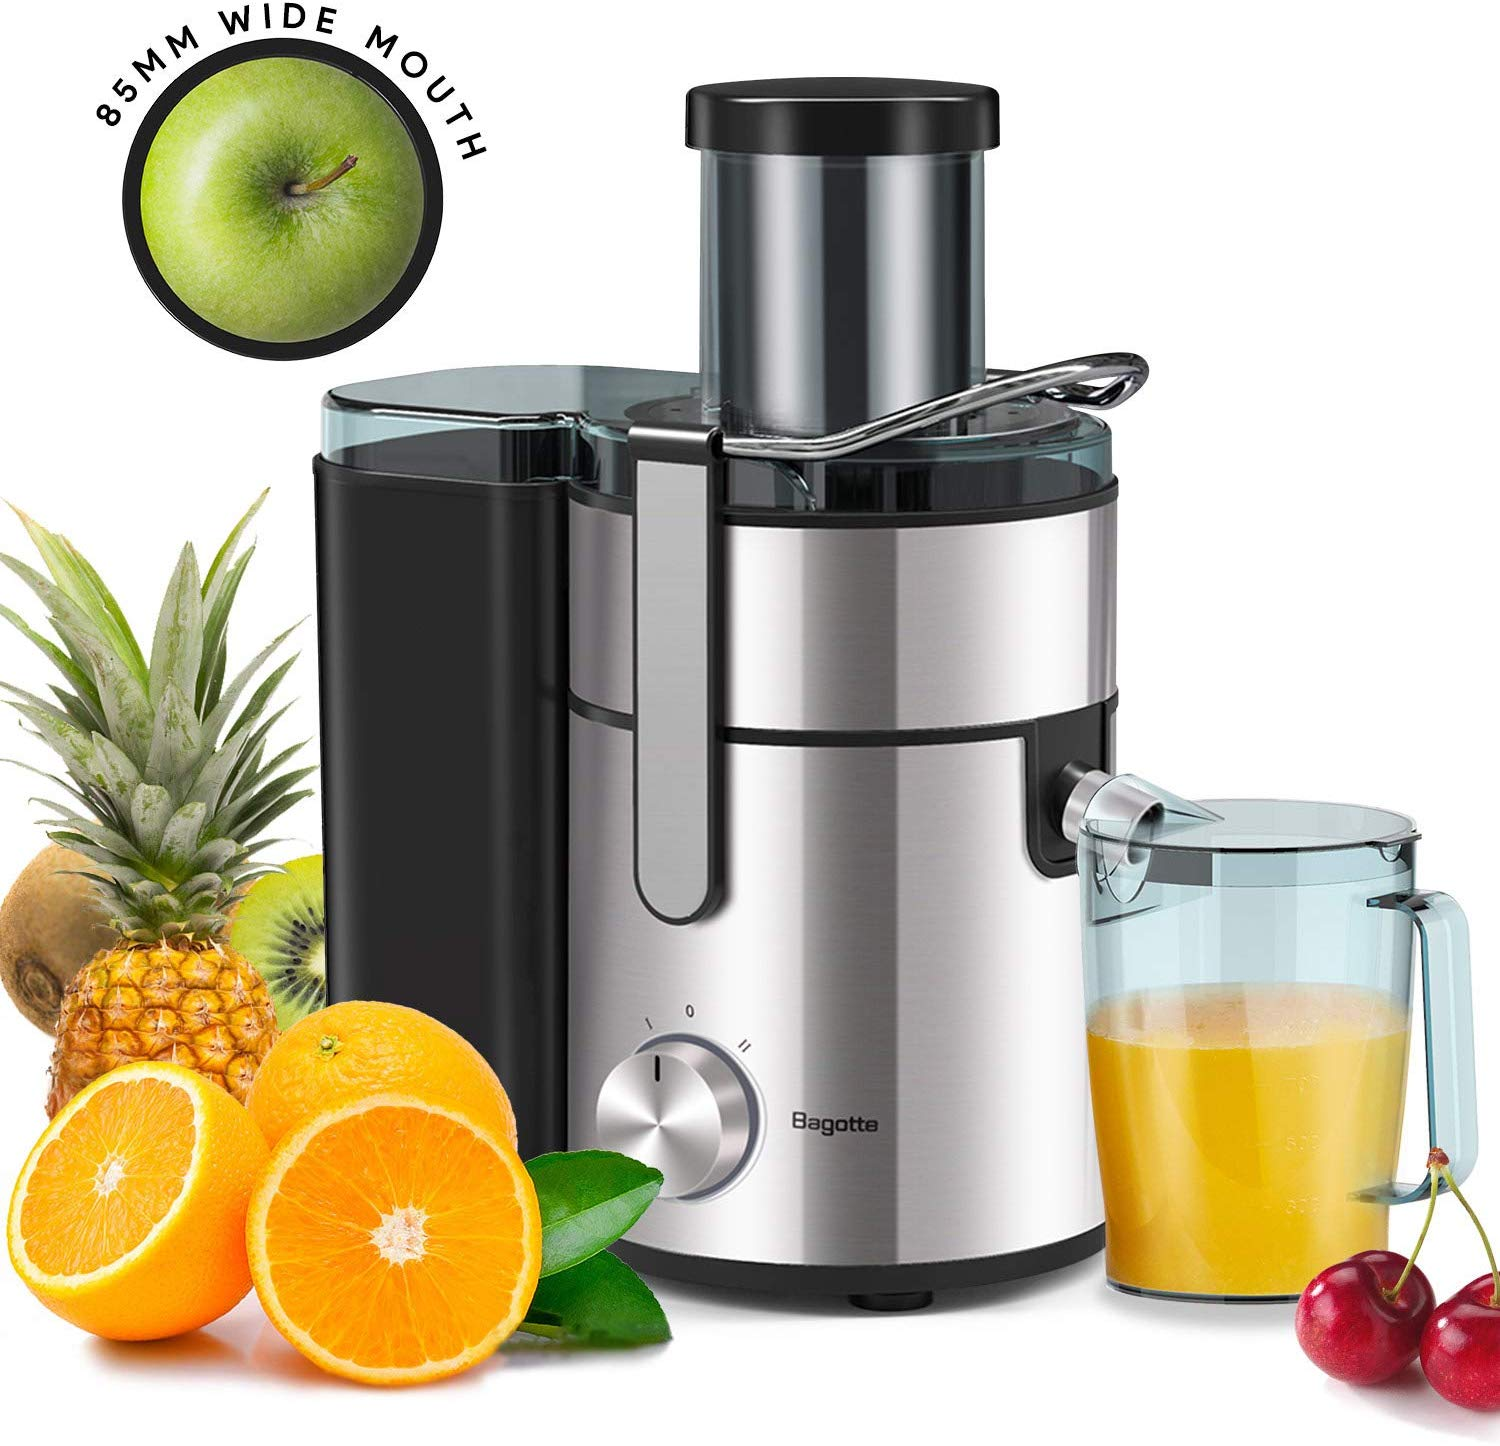 "Juicer, Bagotte Upgrade 1000W Juicer Machines, Easy Clean Juice Extractor 3.3"" Wide Mouth Centrifugal Juicer for Whole Fruit Vegetable, Juicer Recipe Book & Brush, Anti-drip, Dual-Speed, BPA-Free, Large"